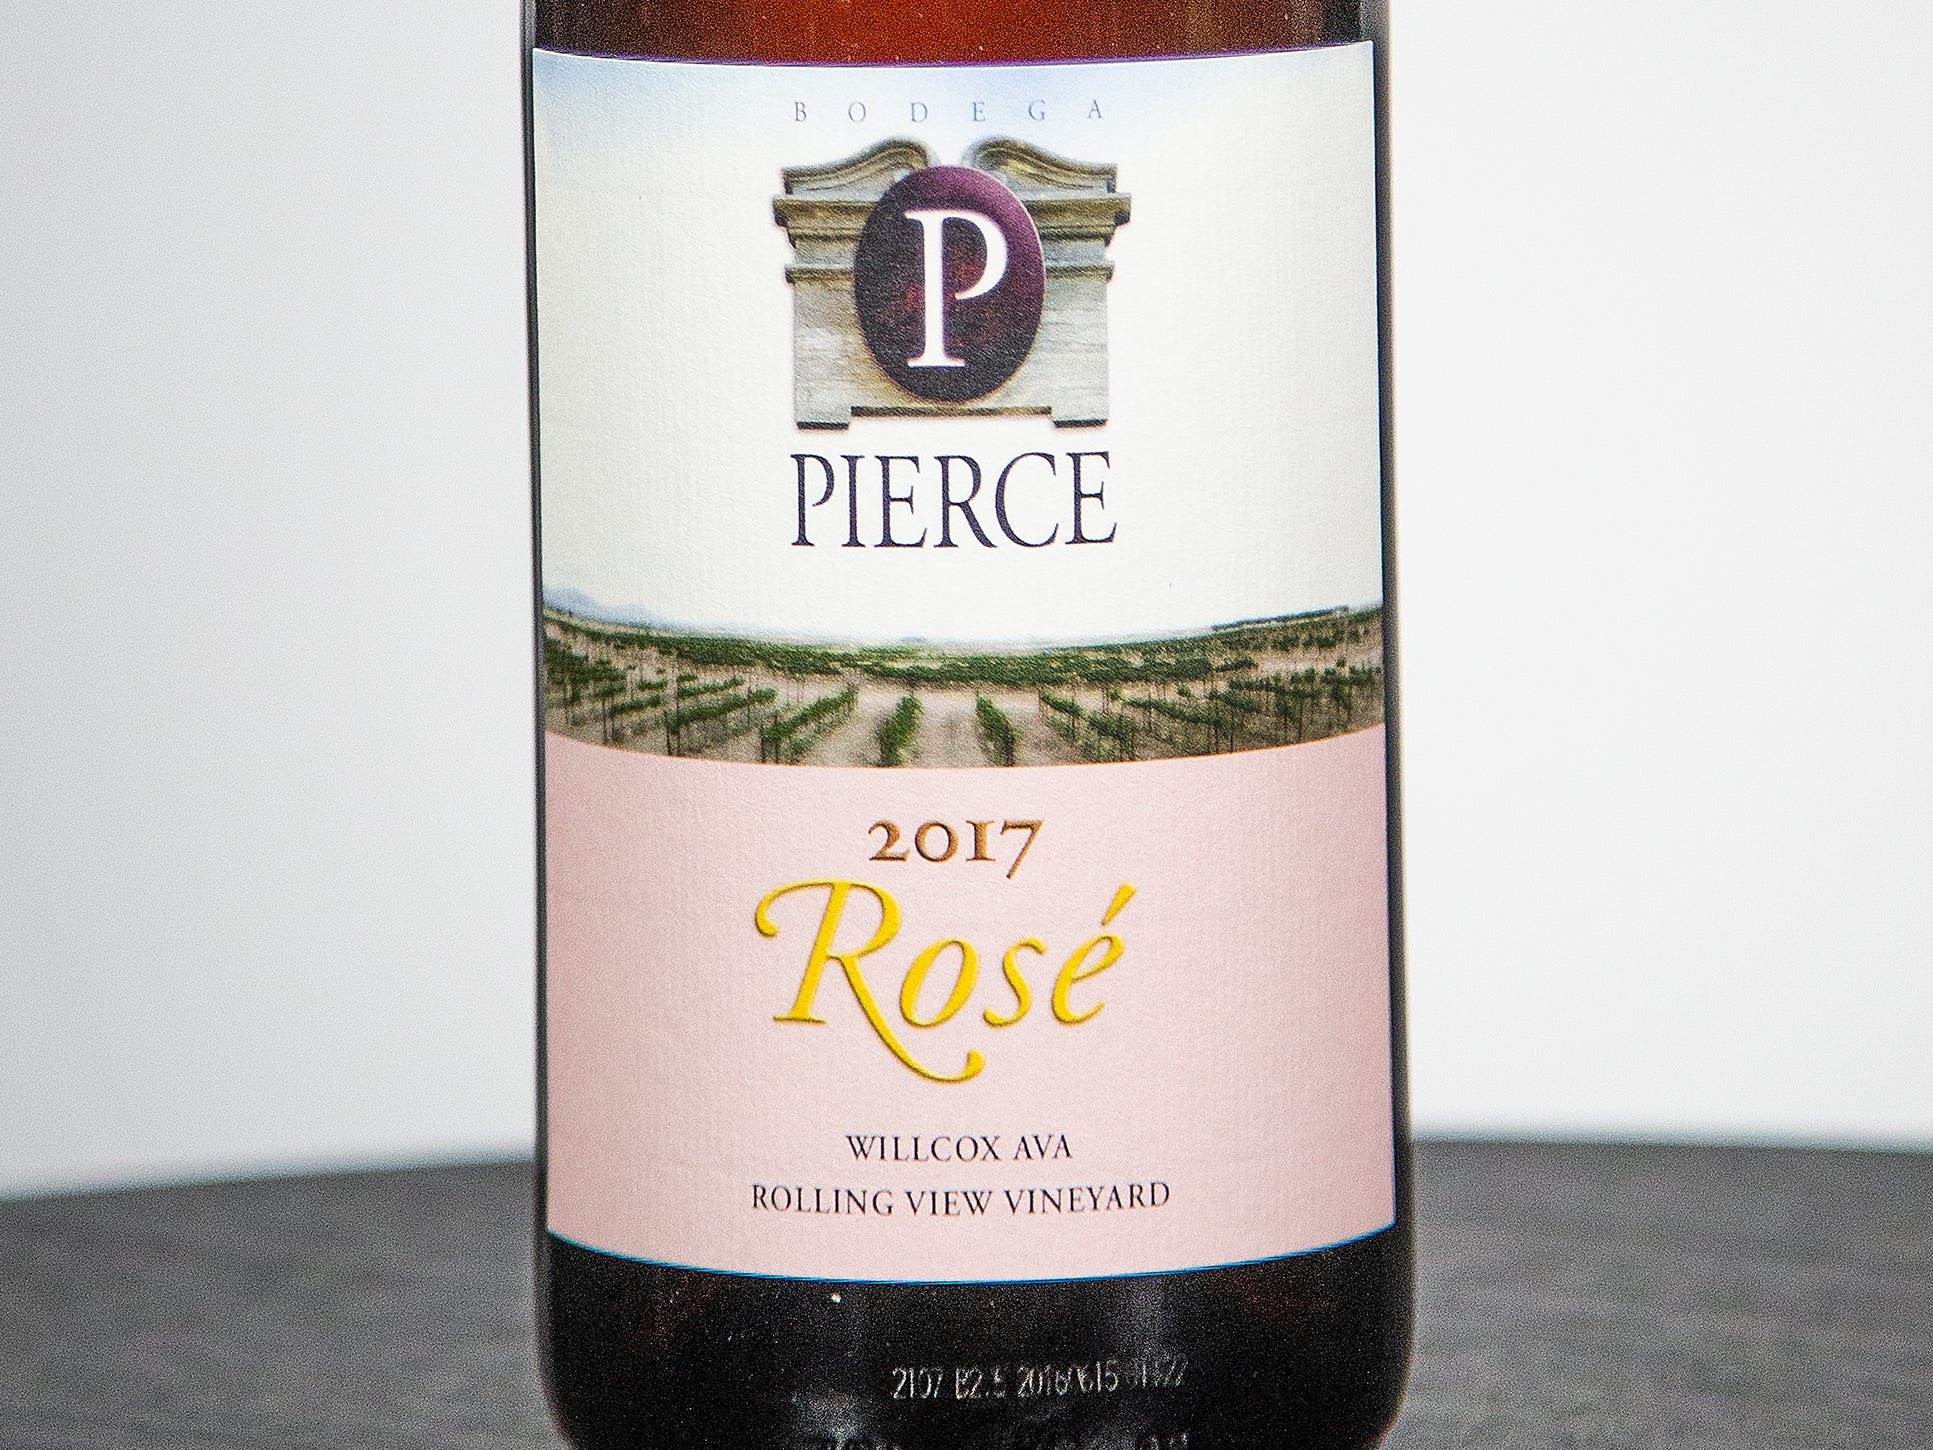 Best Single Varietal Rosé: Bodega Pierce Rosé 2017.